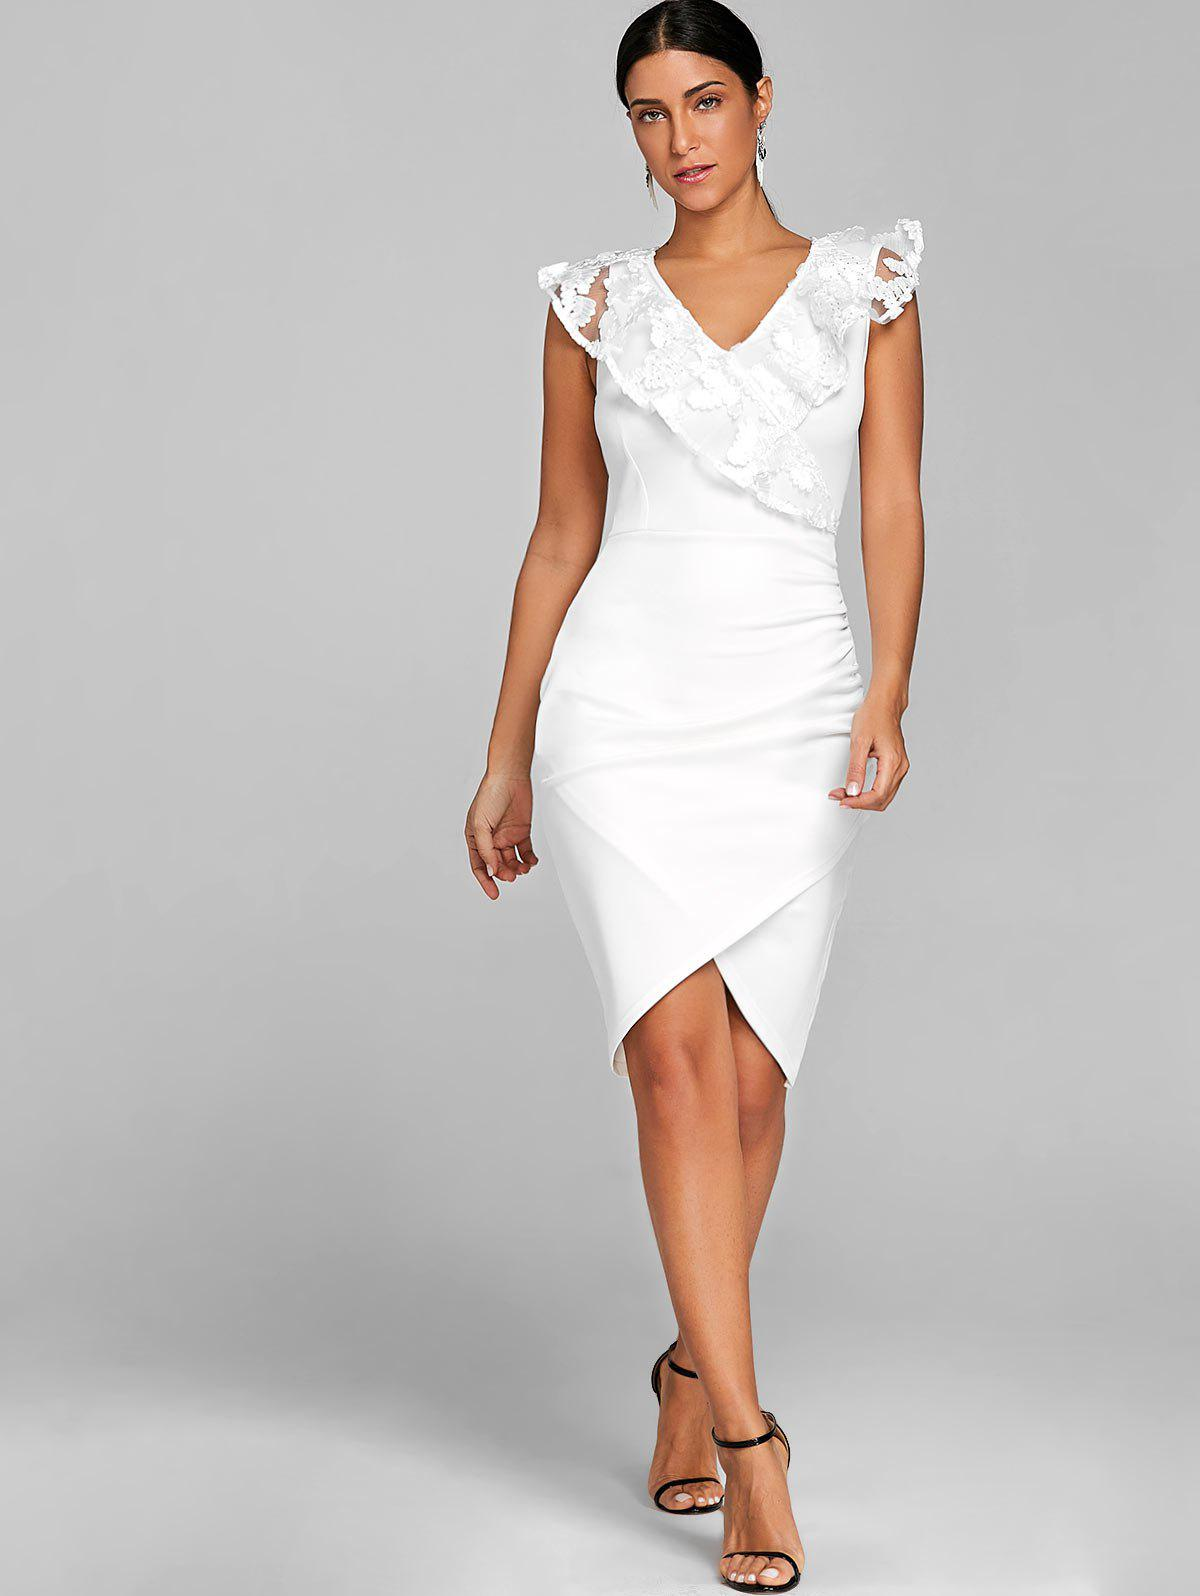 Ruched Lace Trimmed Bodycon Dress - WHITE S